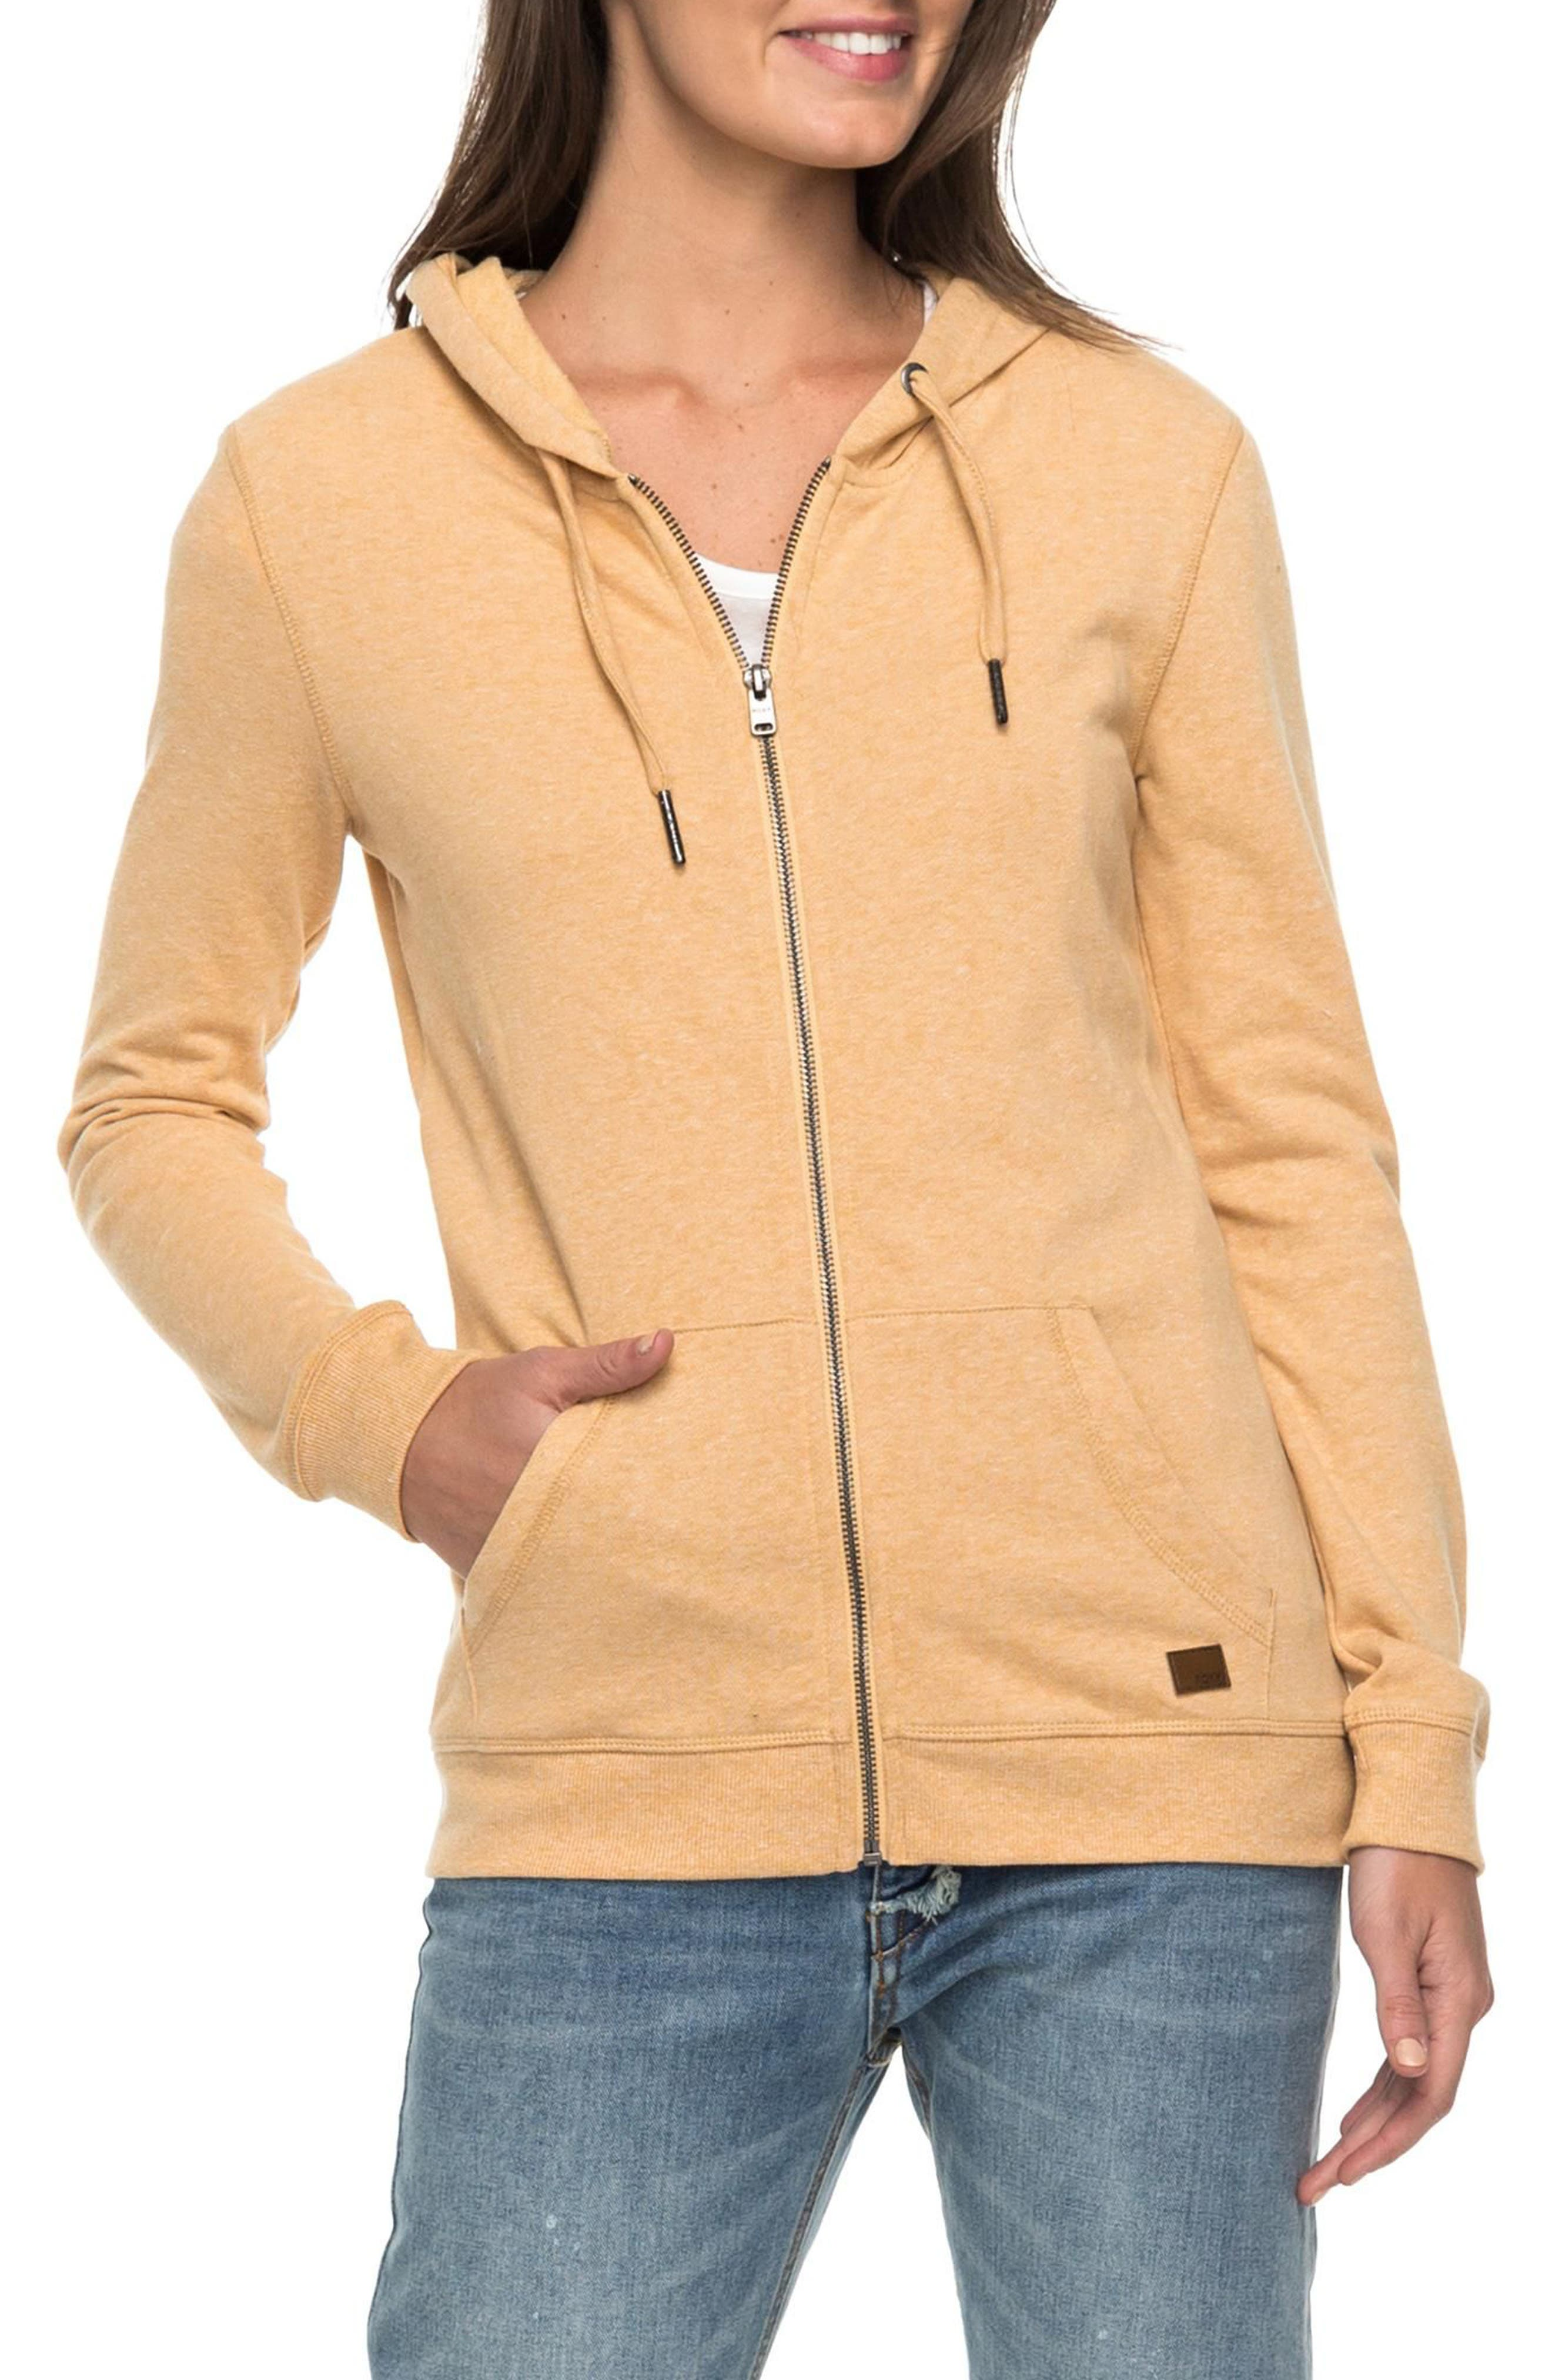 Trippin Hoodie,                             Main thumbnail 1, color,                             Buff Yellow Heather